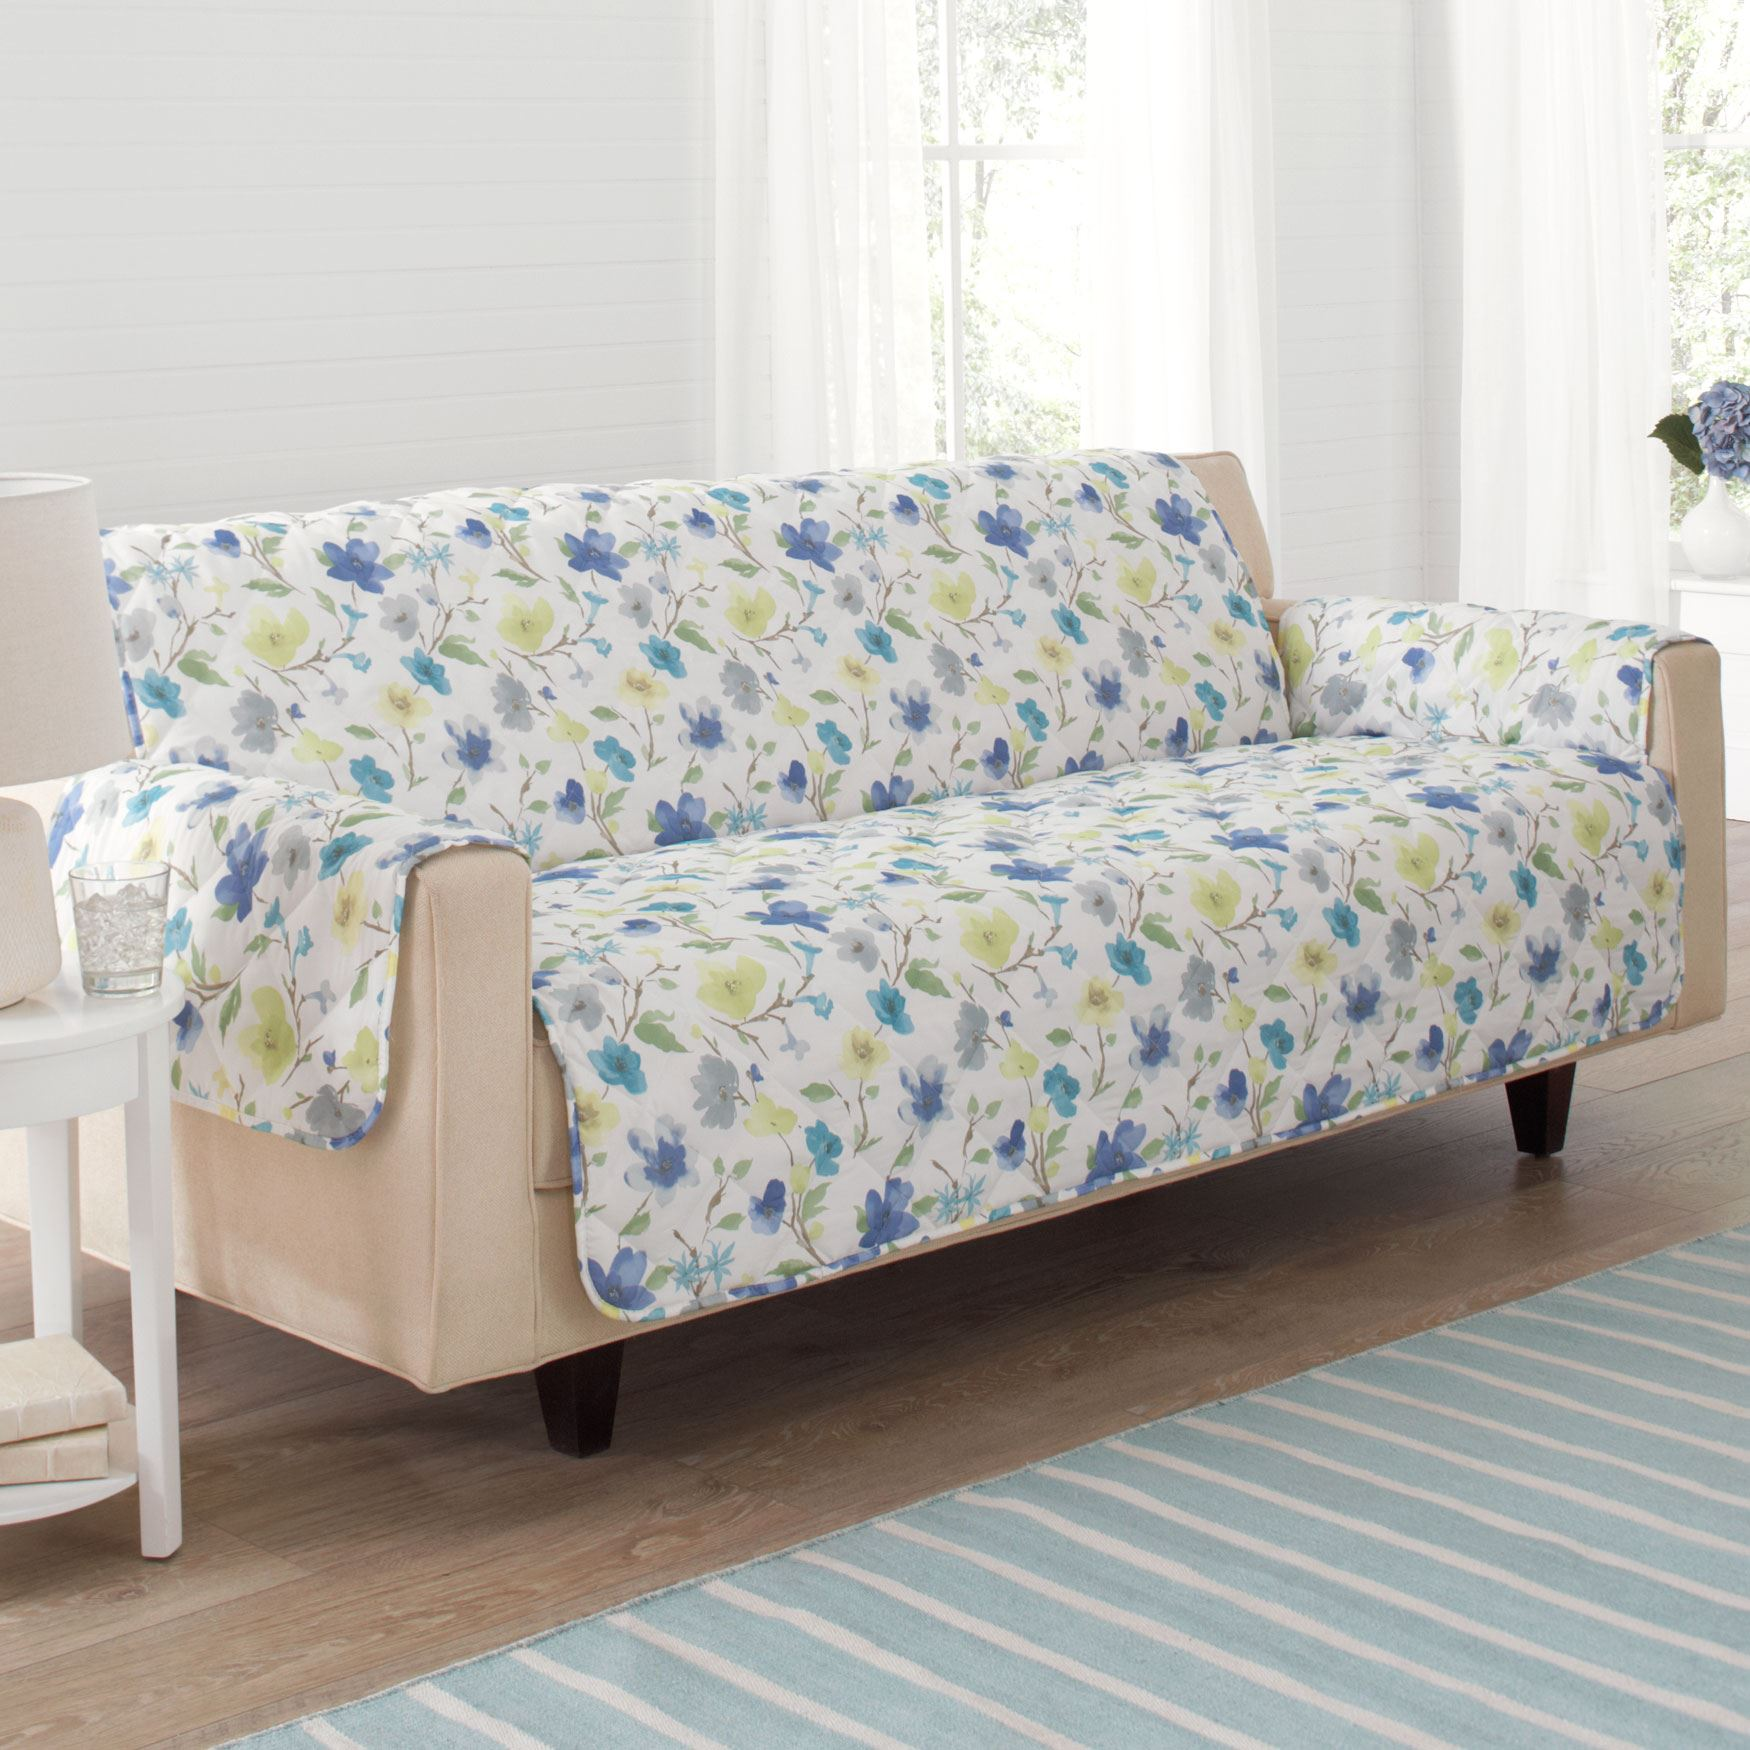 Springtime Sofa Protector Collection,